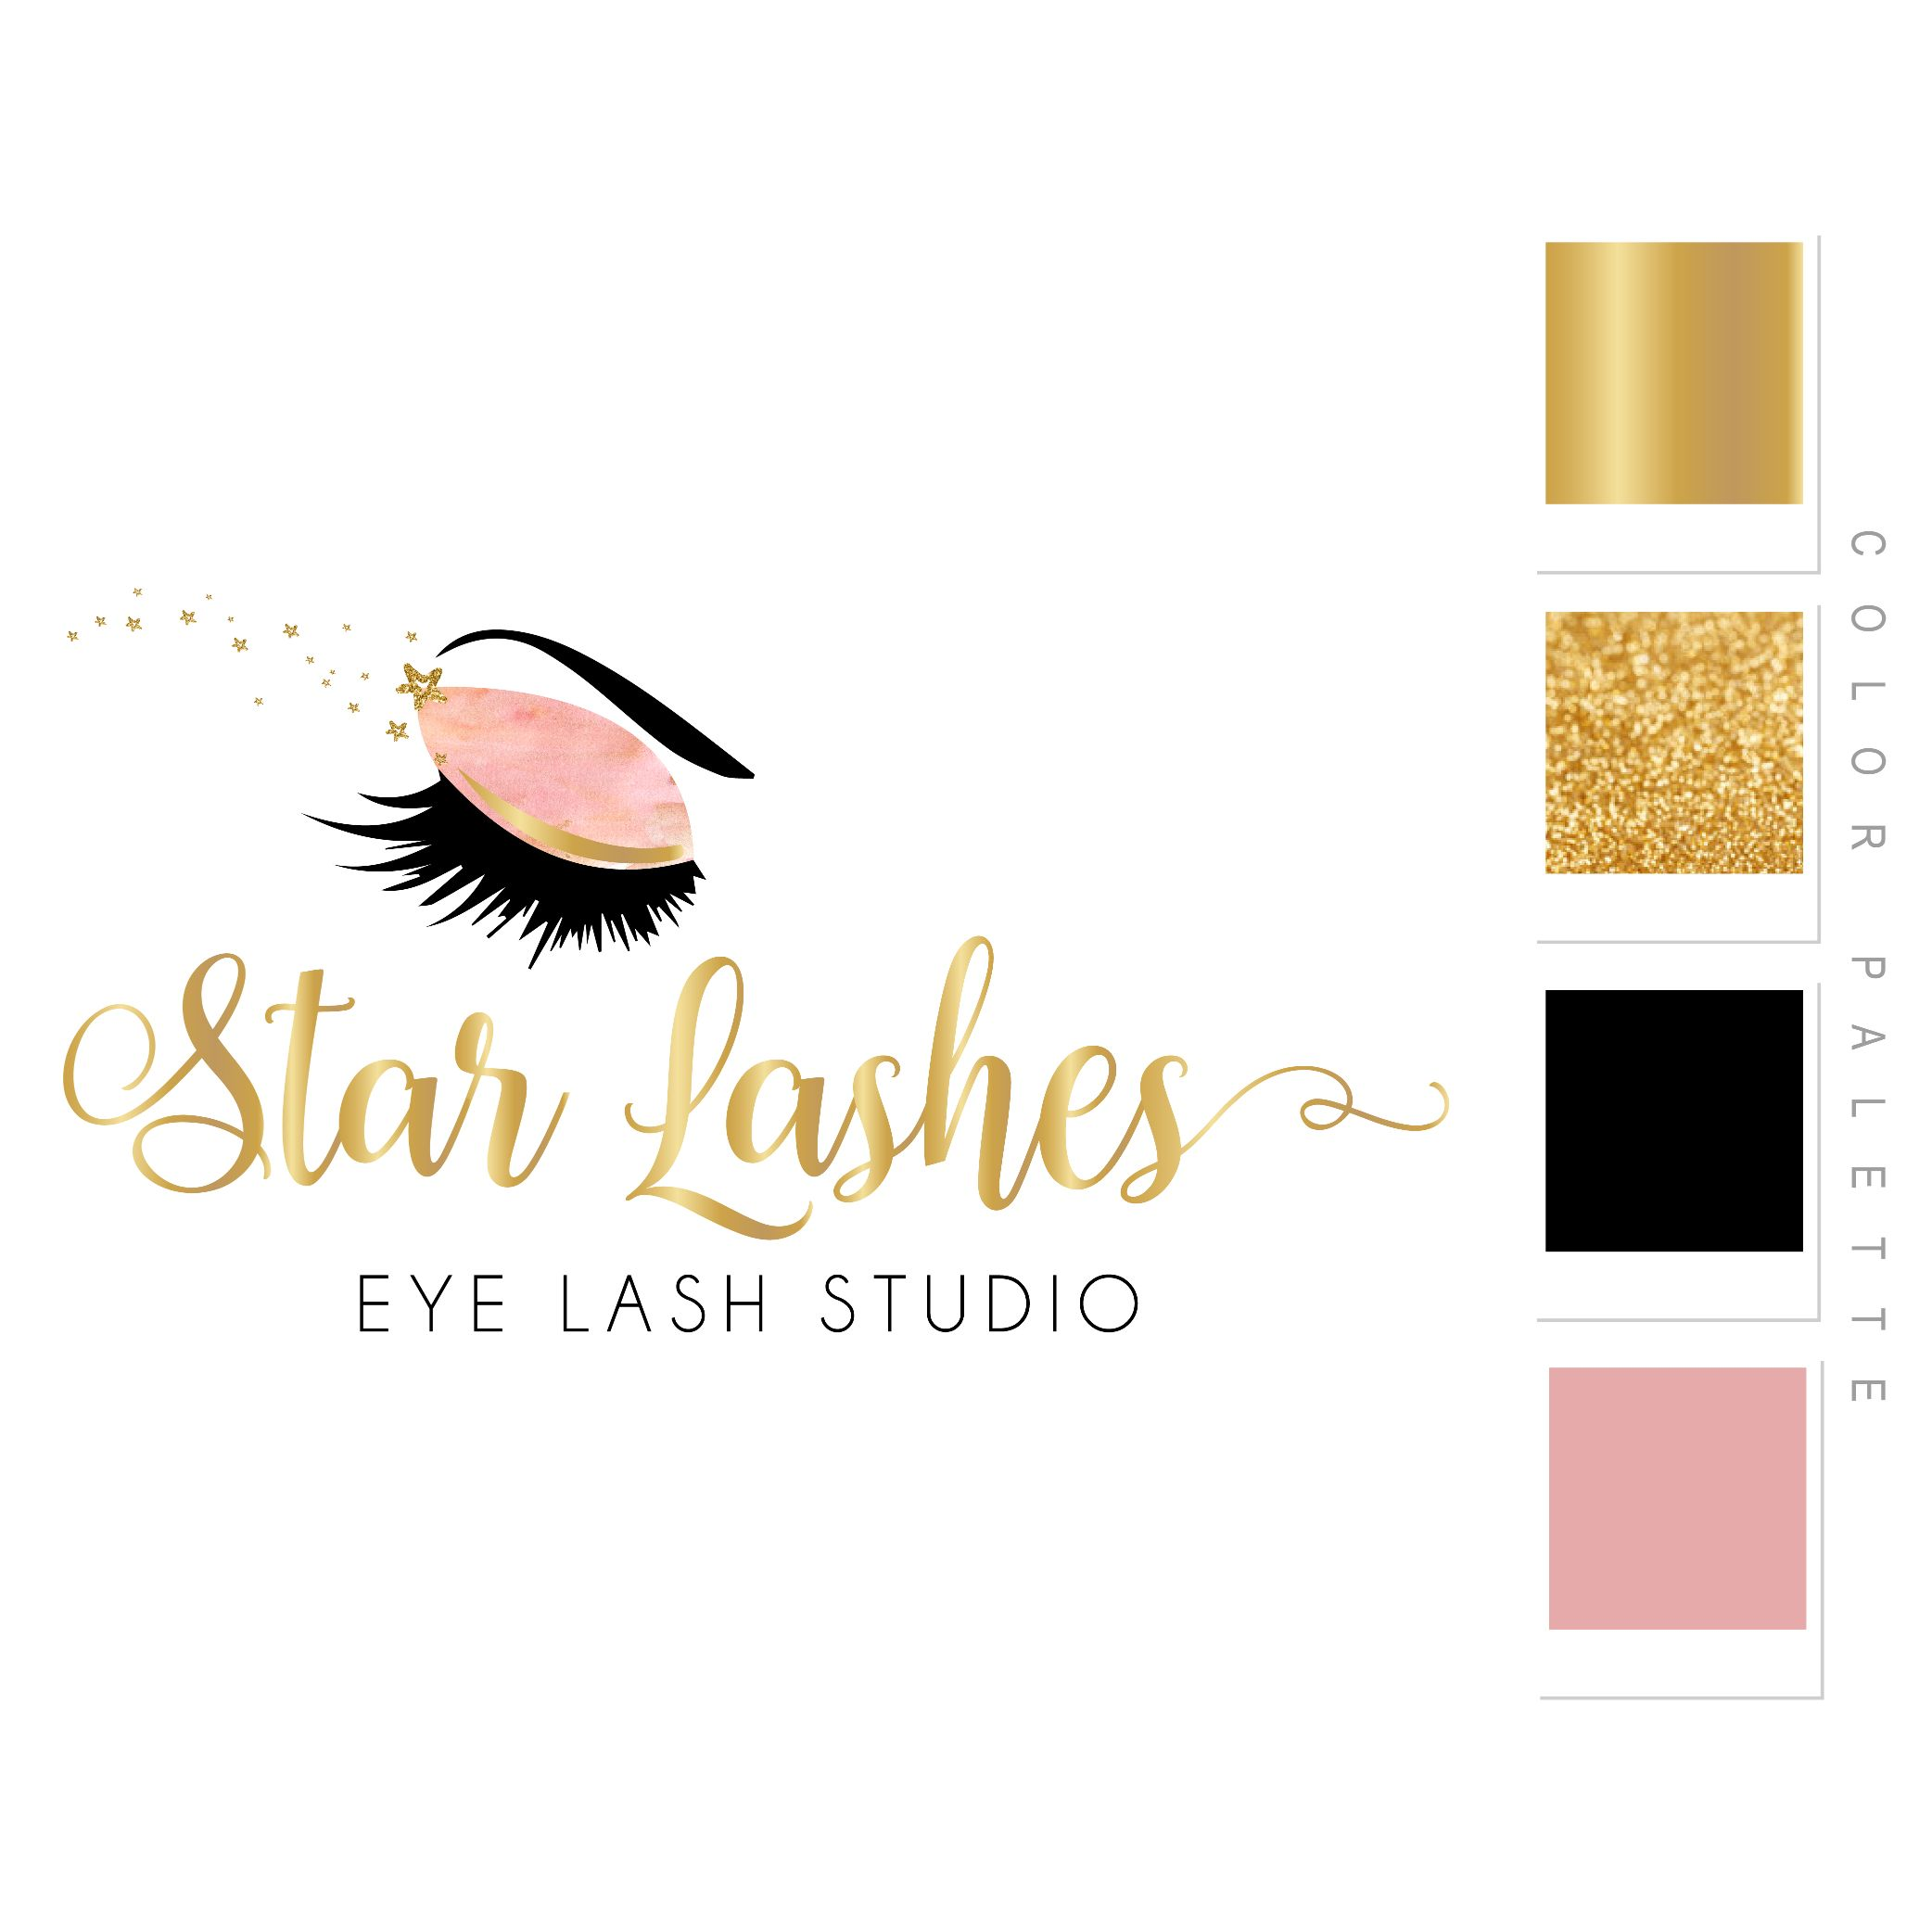 Star Lashes Eye Lash Studio Logo Design